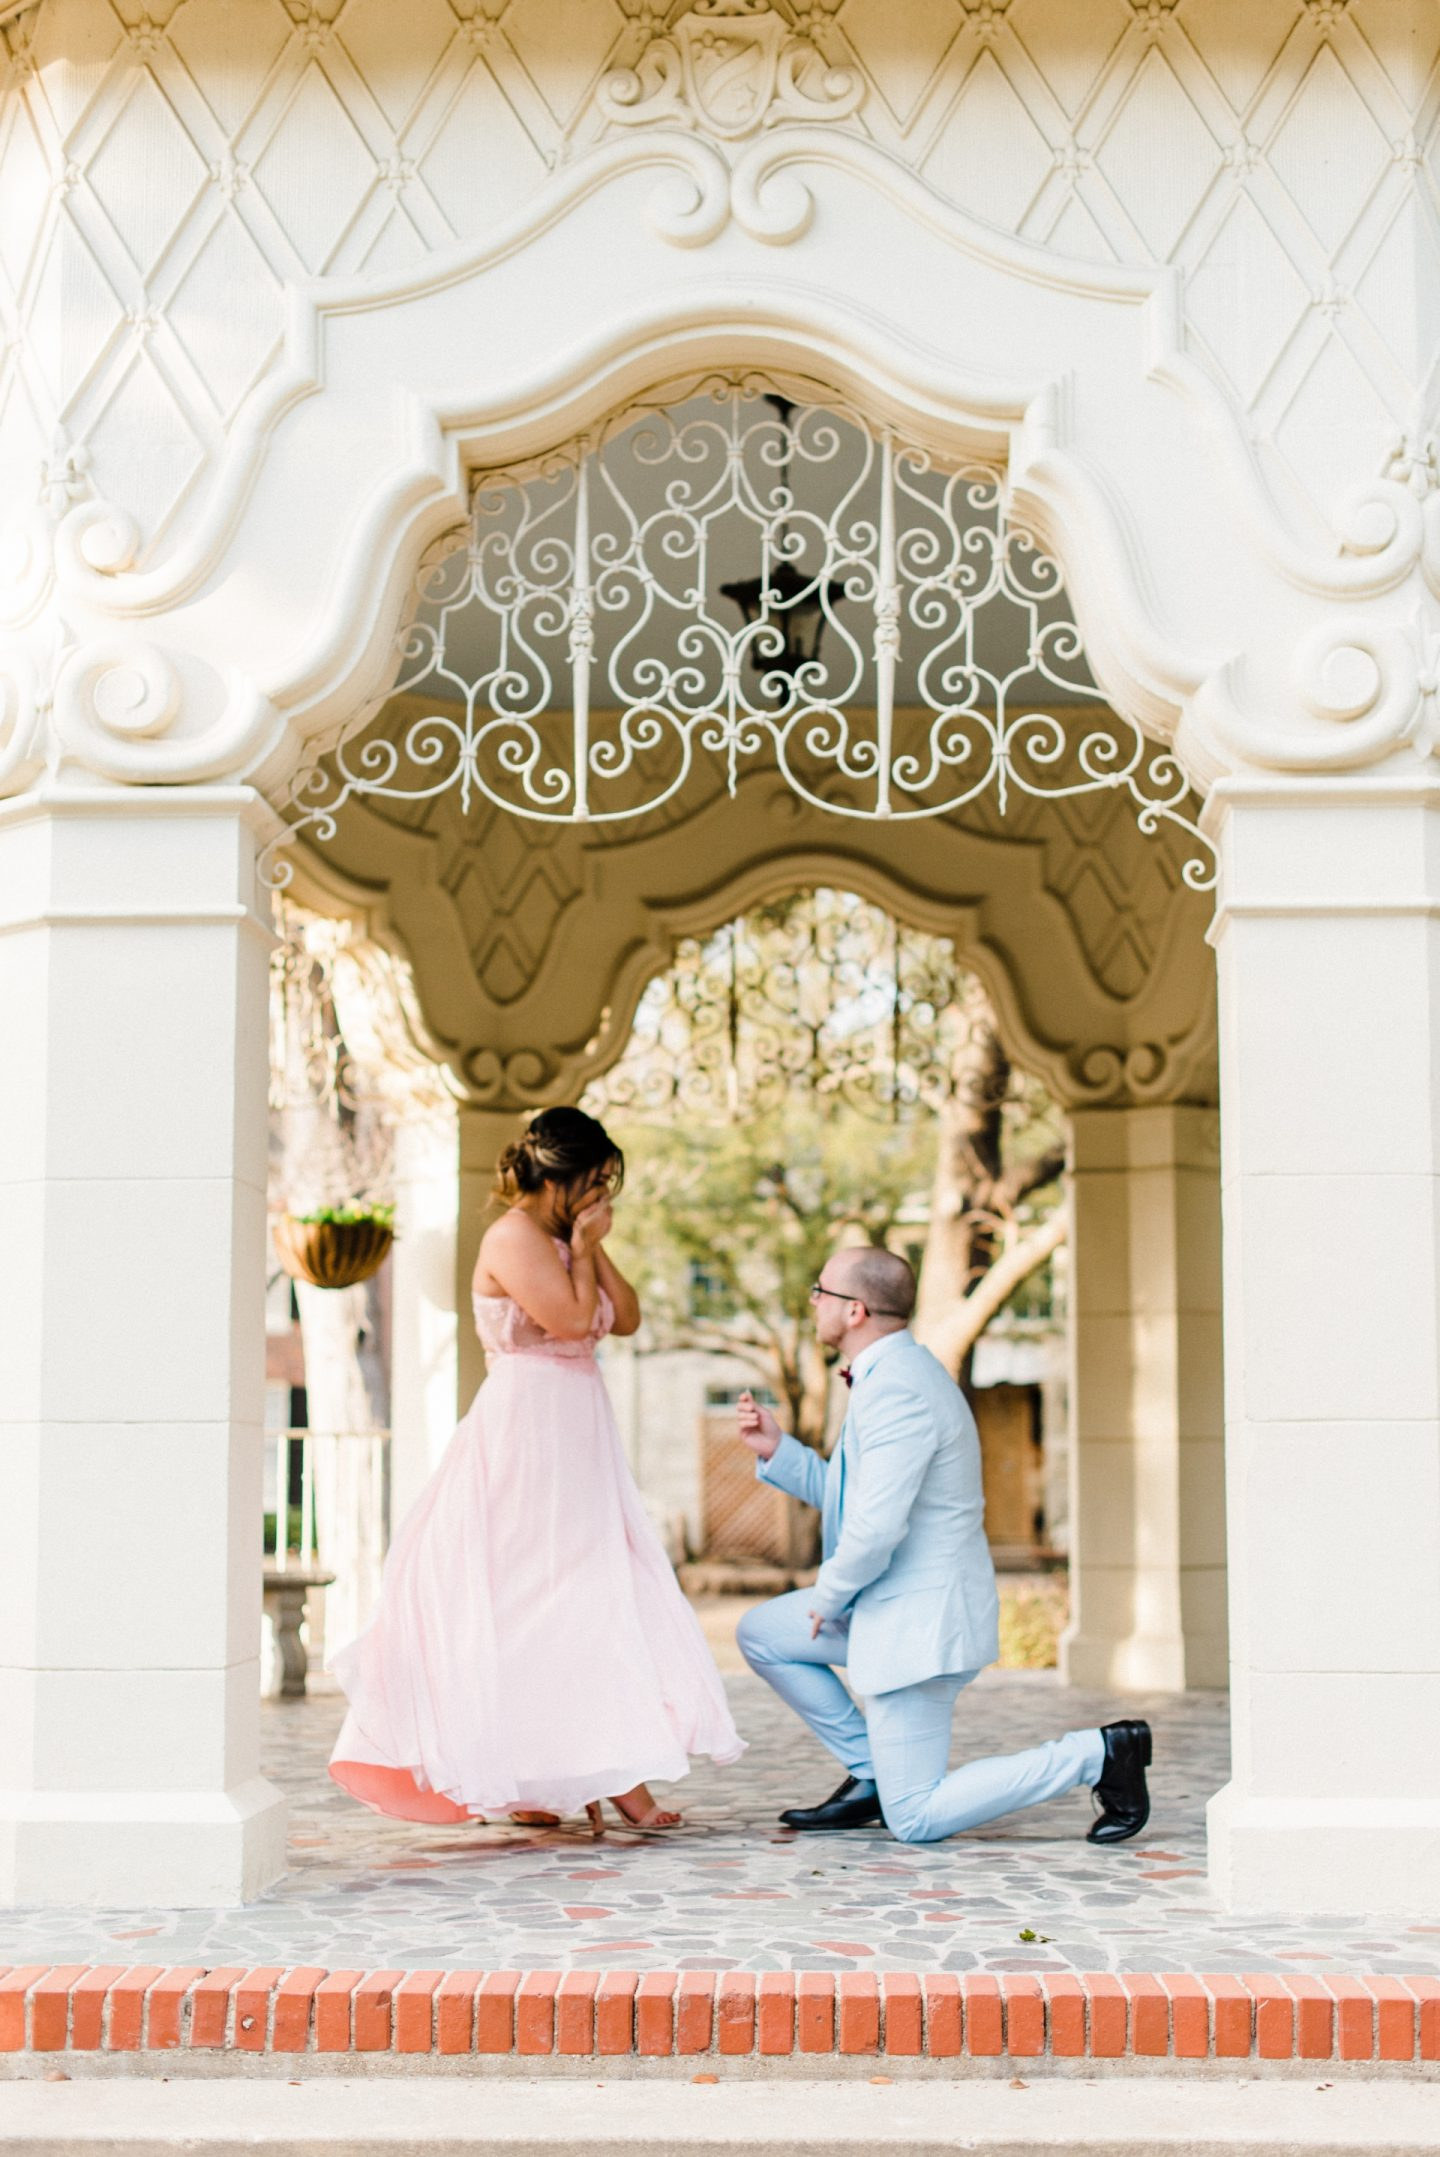 How a Valentine's Day Photoshoot Turned into a Proposal